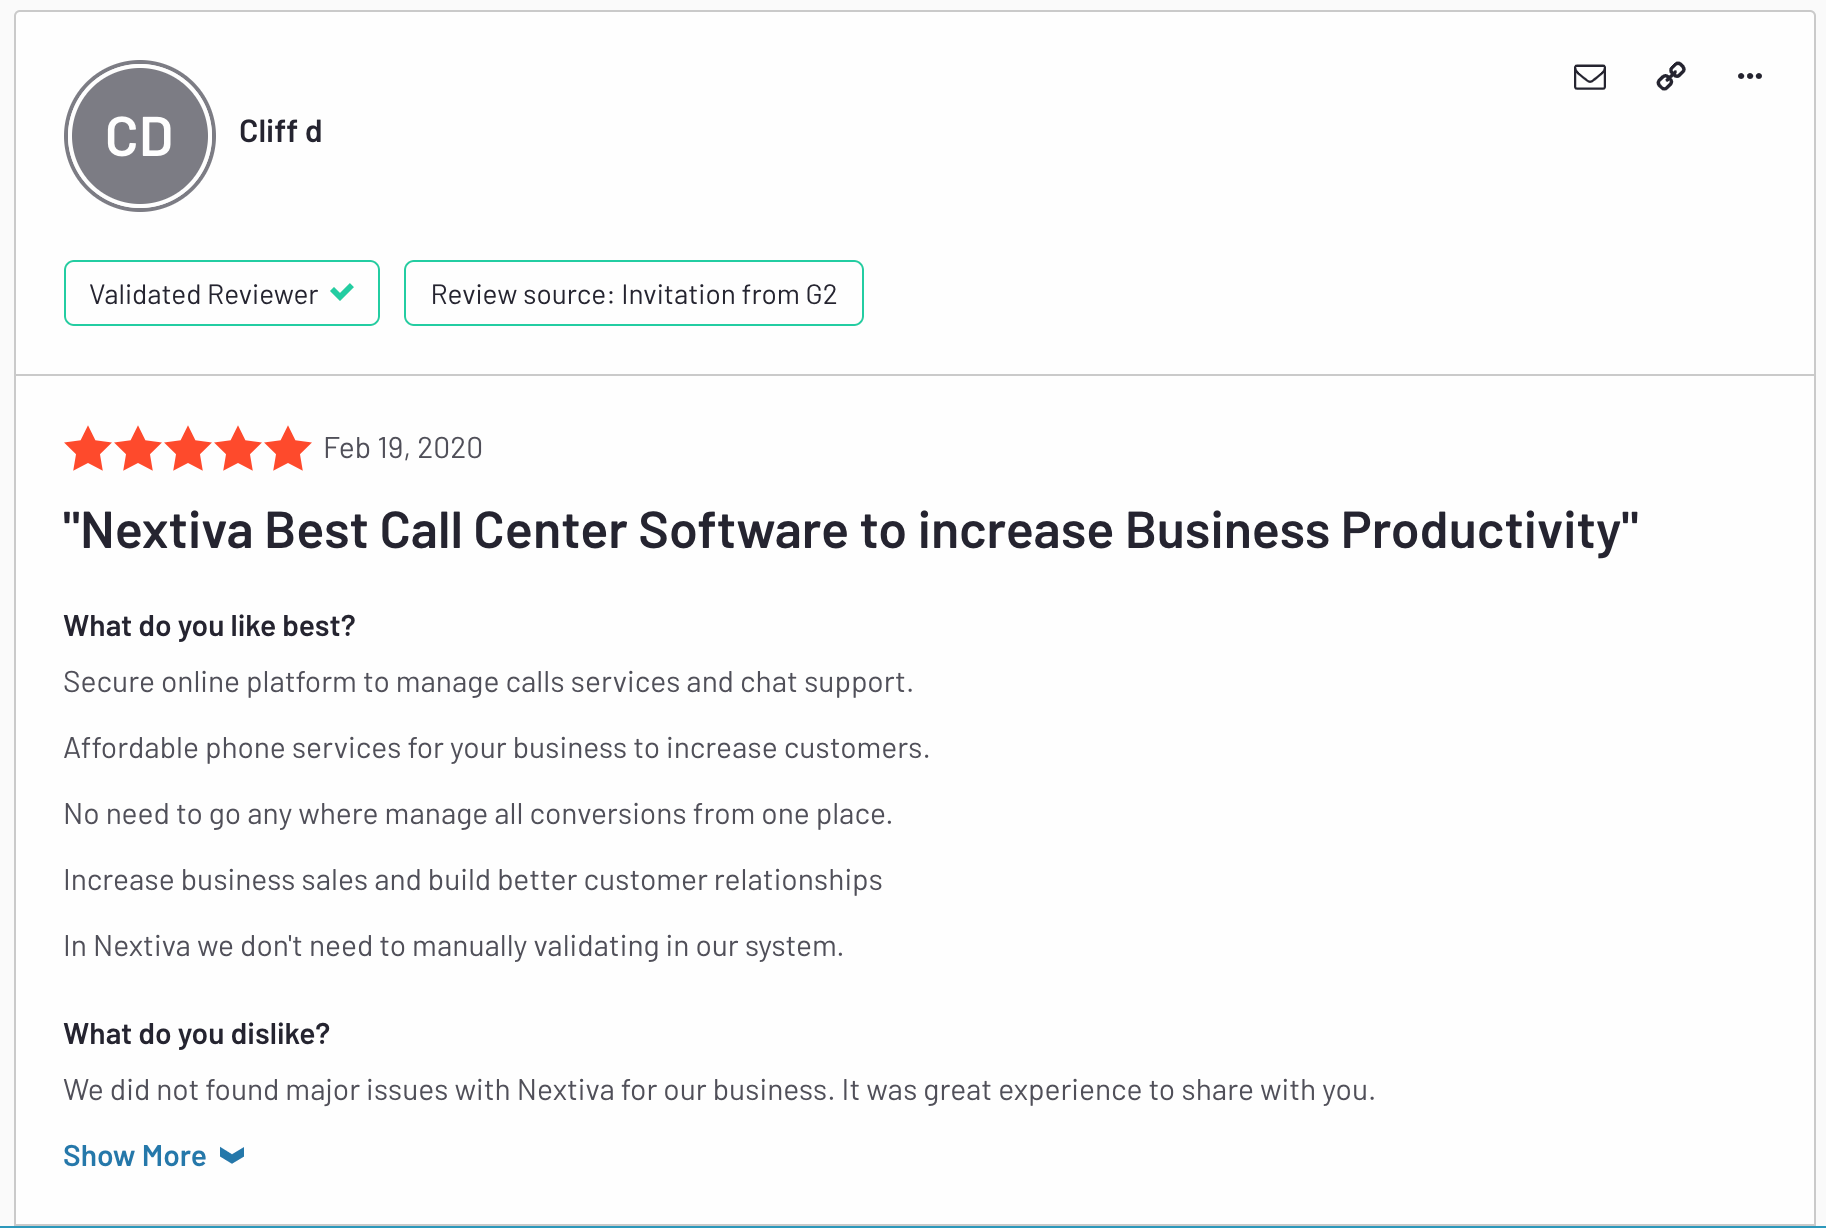 Nextiva's call center software increases productivity - G2 Review about Nextiva